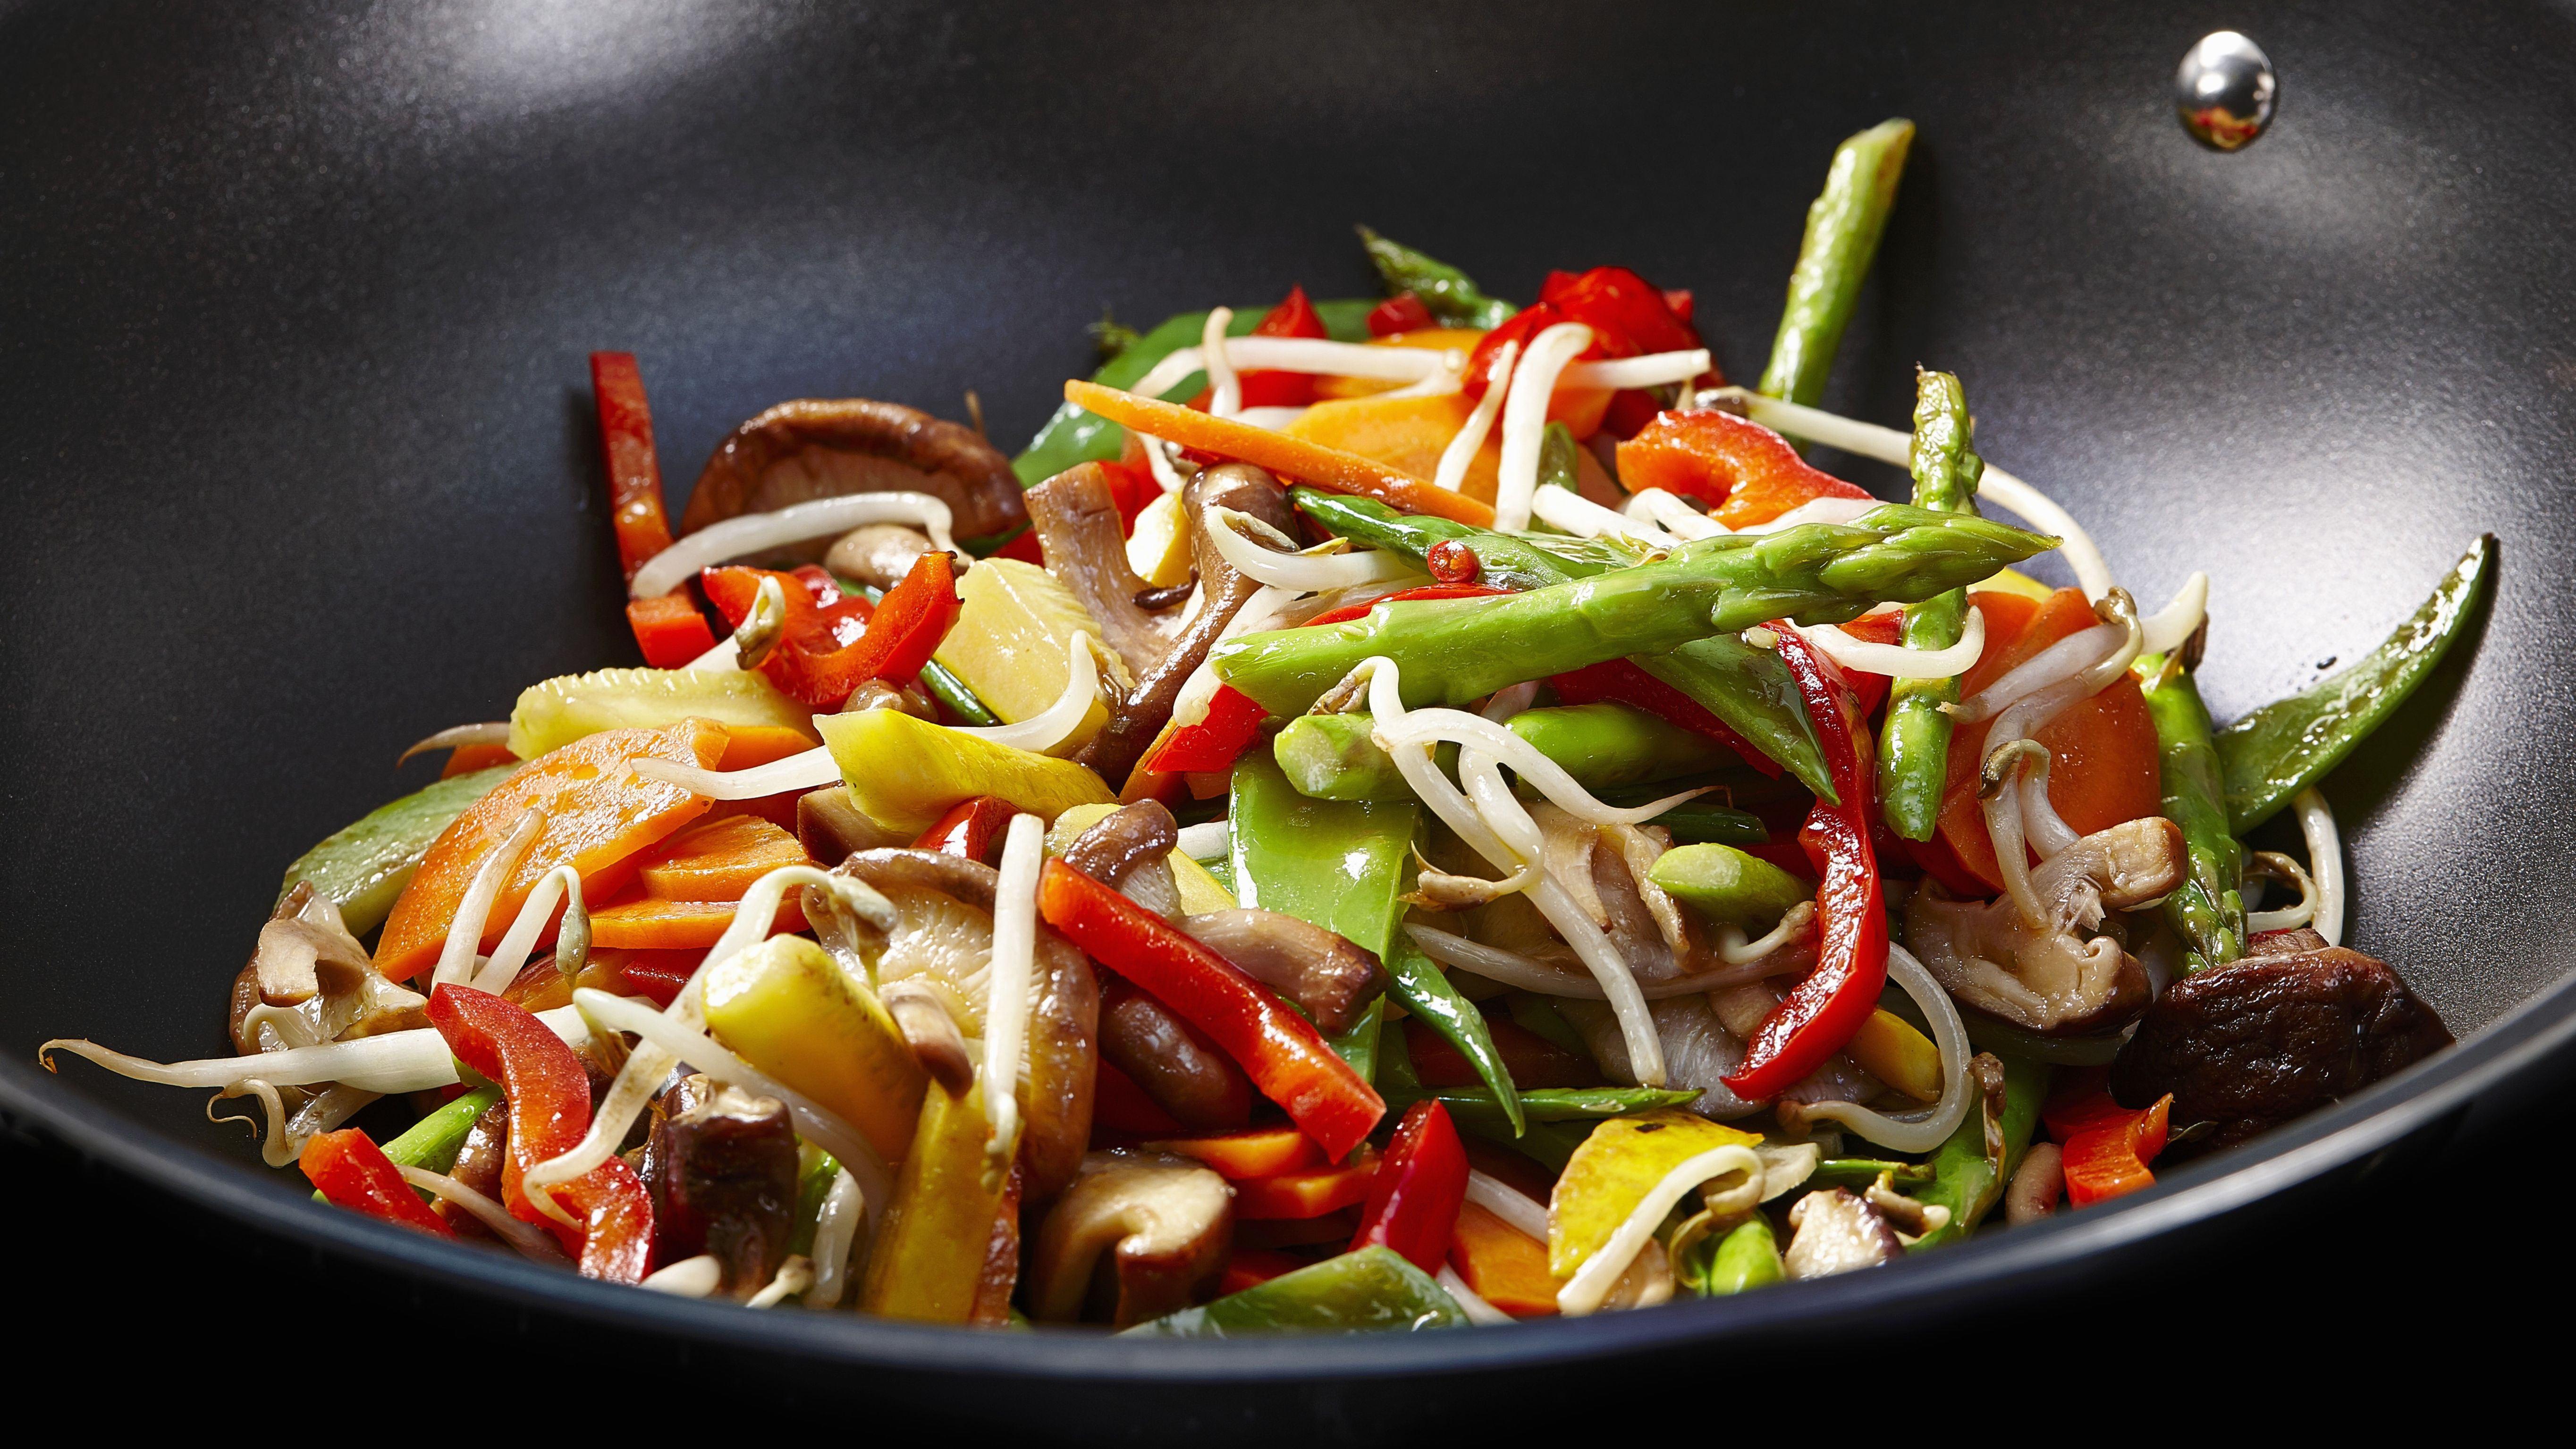 Asparagus With Mixed Vegetables Stir Fry Recipe